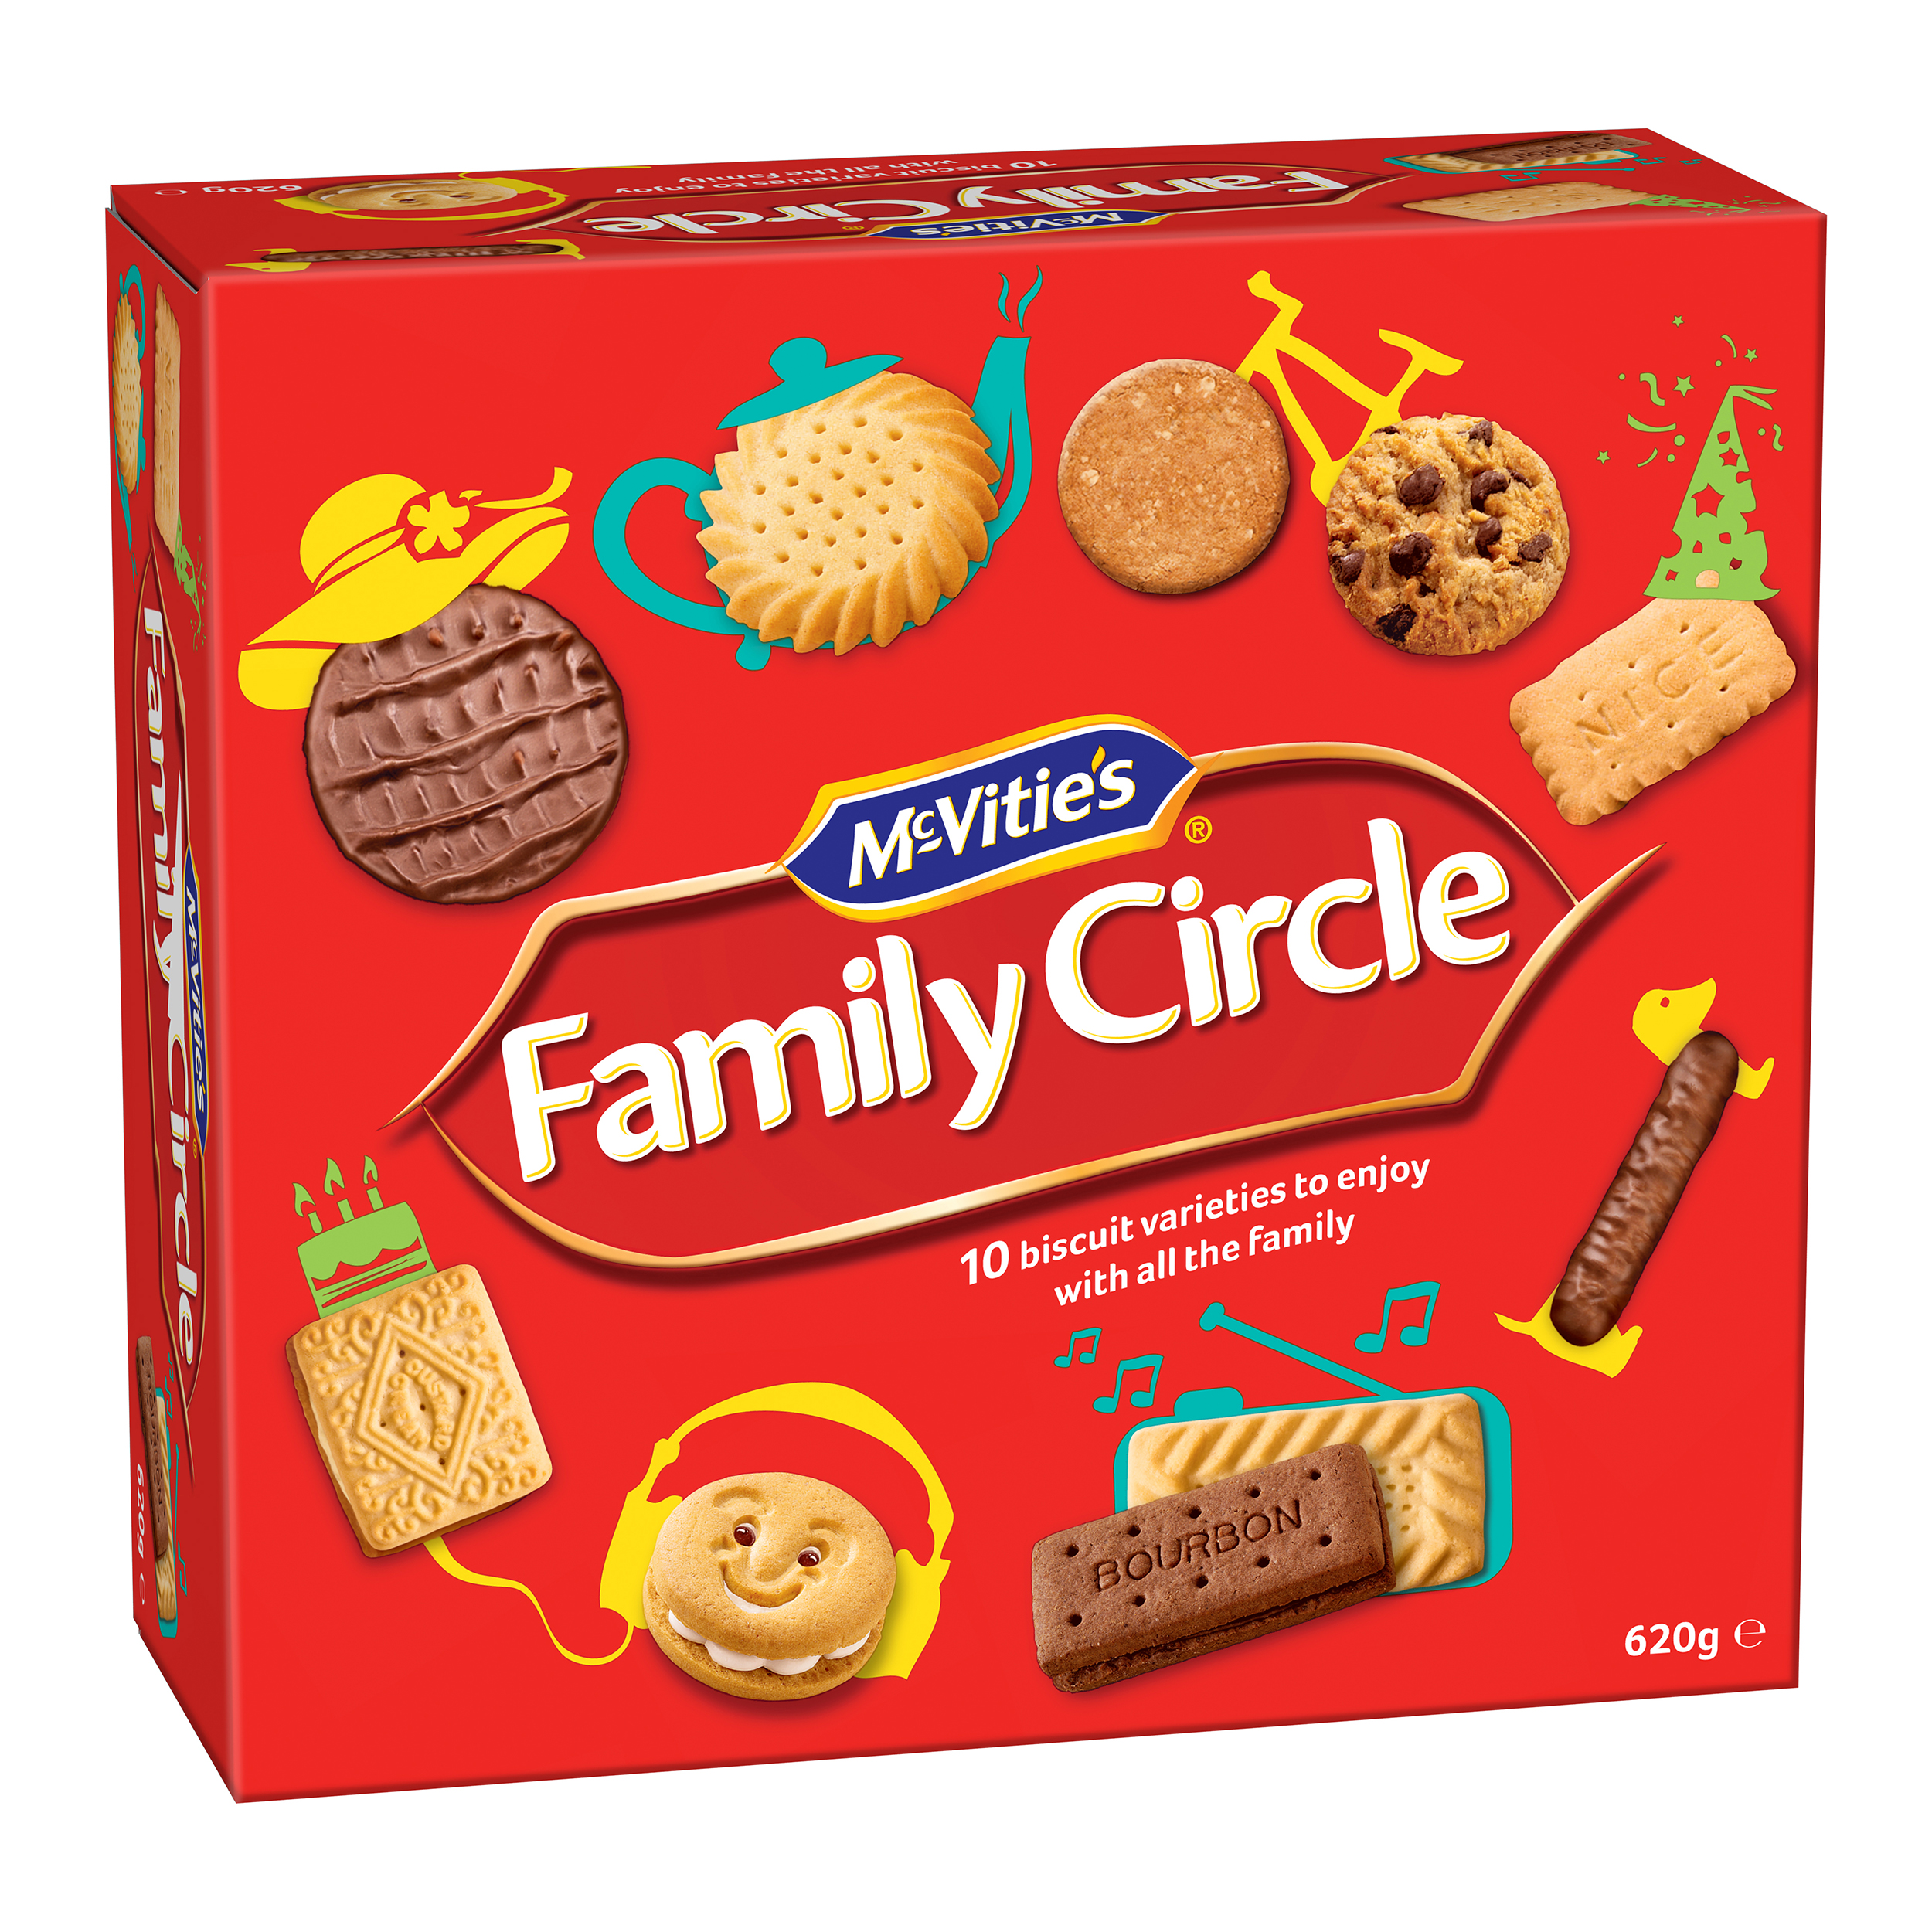 McVities Family Circle Biscuits Re-sealable Box 10 Varieties 620g Assorted Ref 0401200